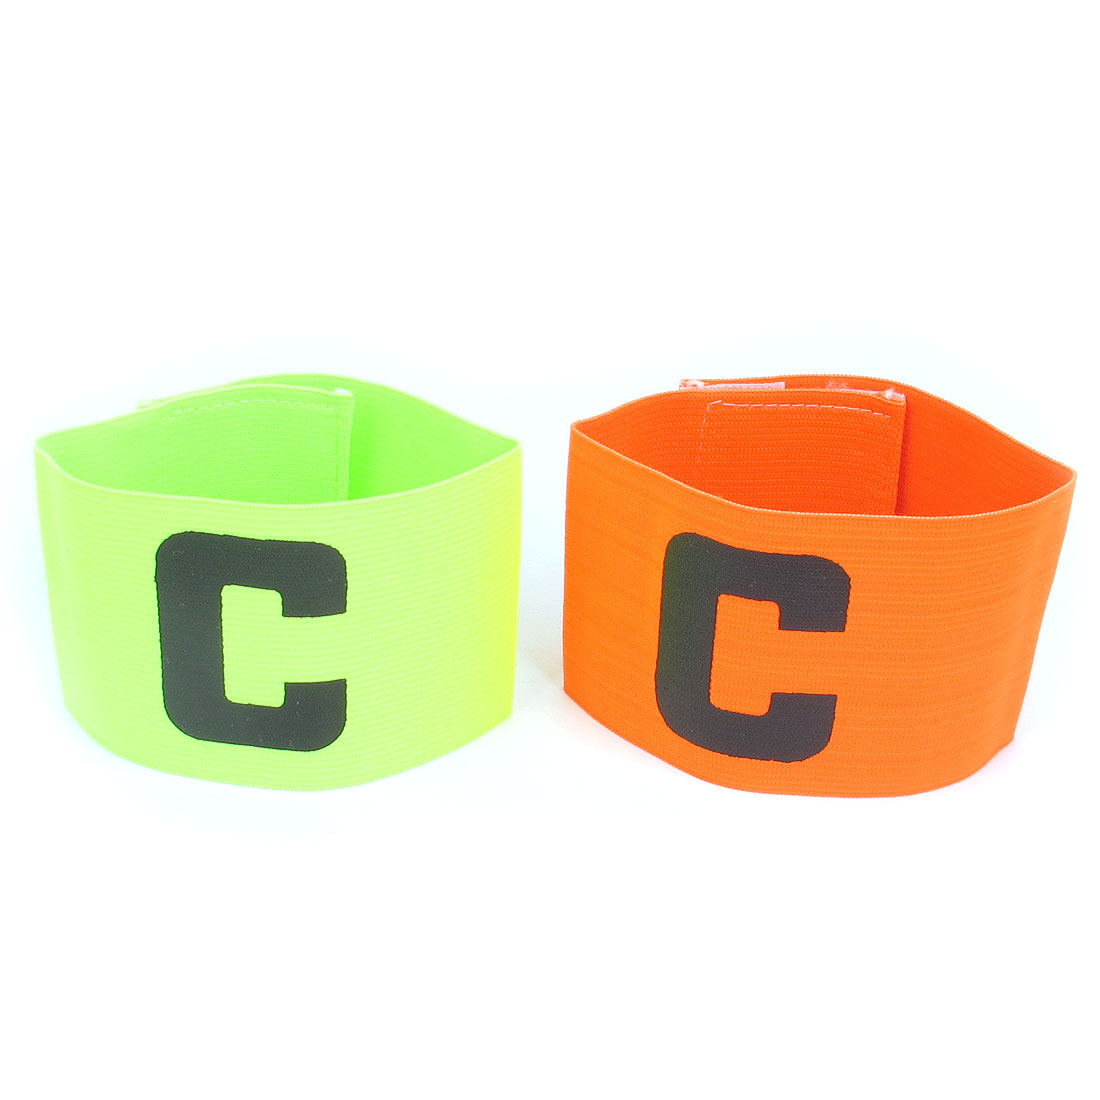 C Printed Elastic Football Tension Soccer Match Player Captain Armband Orange Yellow Green 2pcs